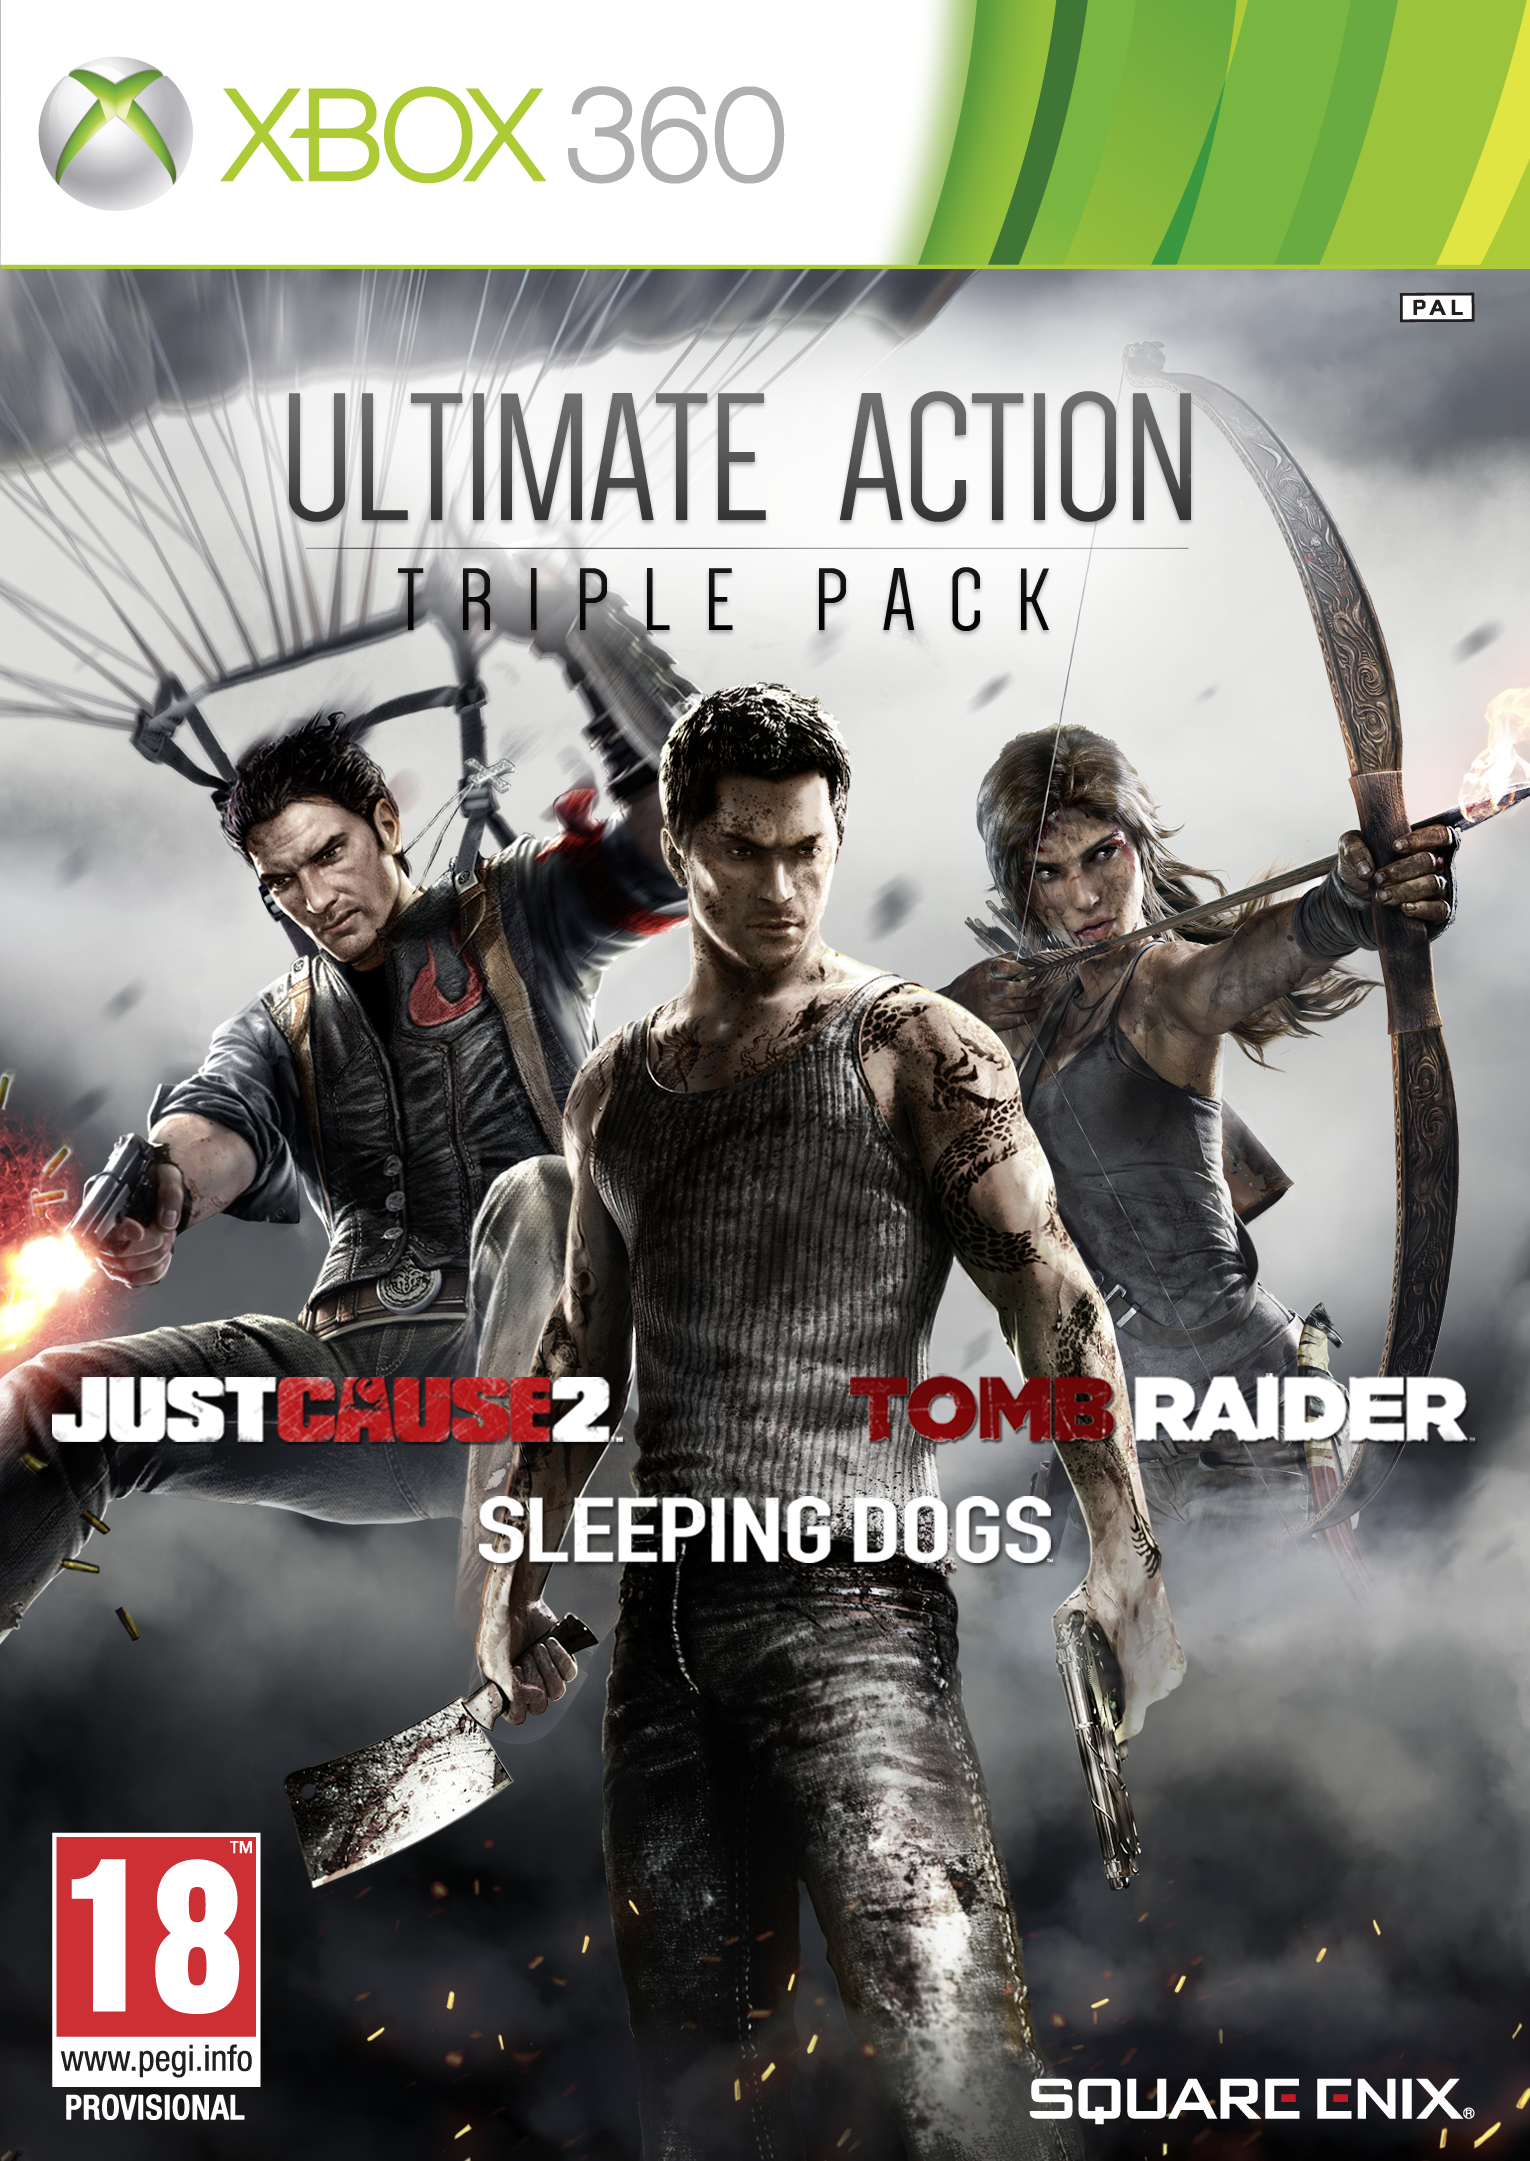 Комплект: Sleeping Dogs + Tomb Raider + Just Cause 2